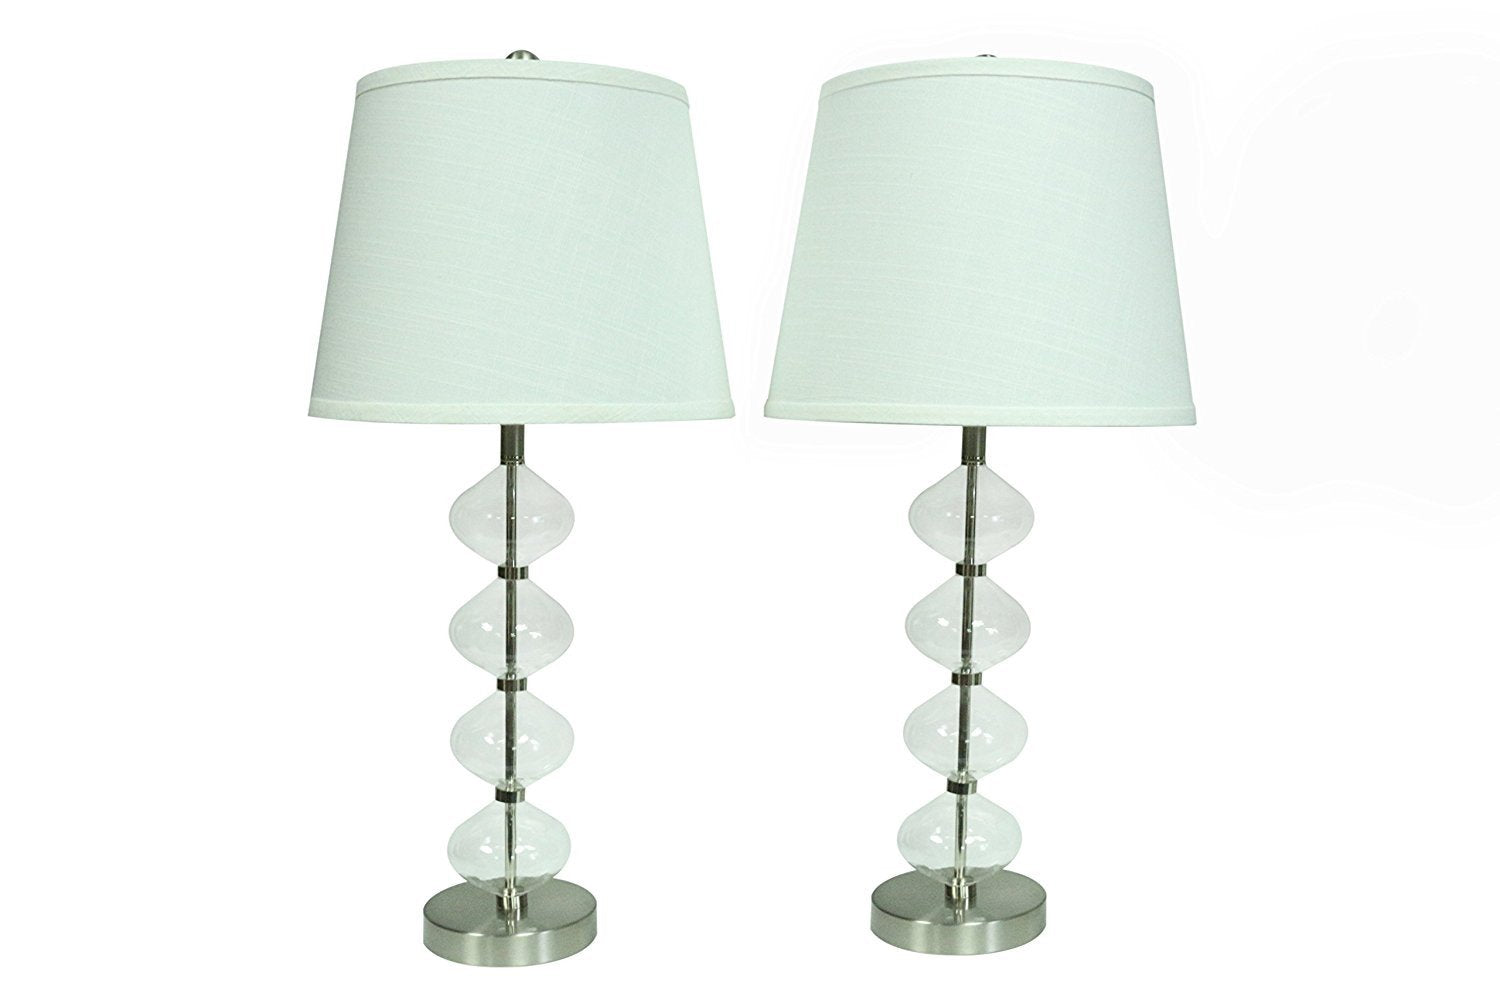 Set of 2 Beautor Table Lamps with Shades